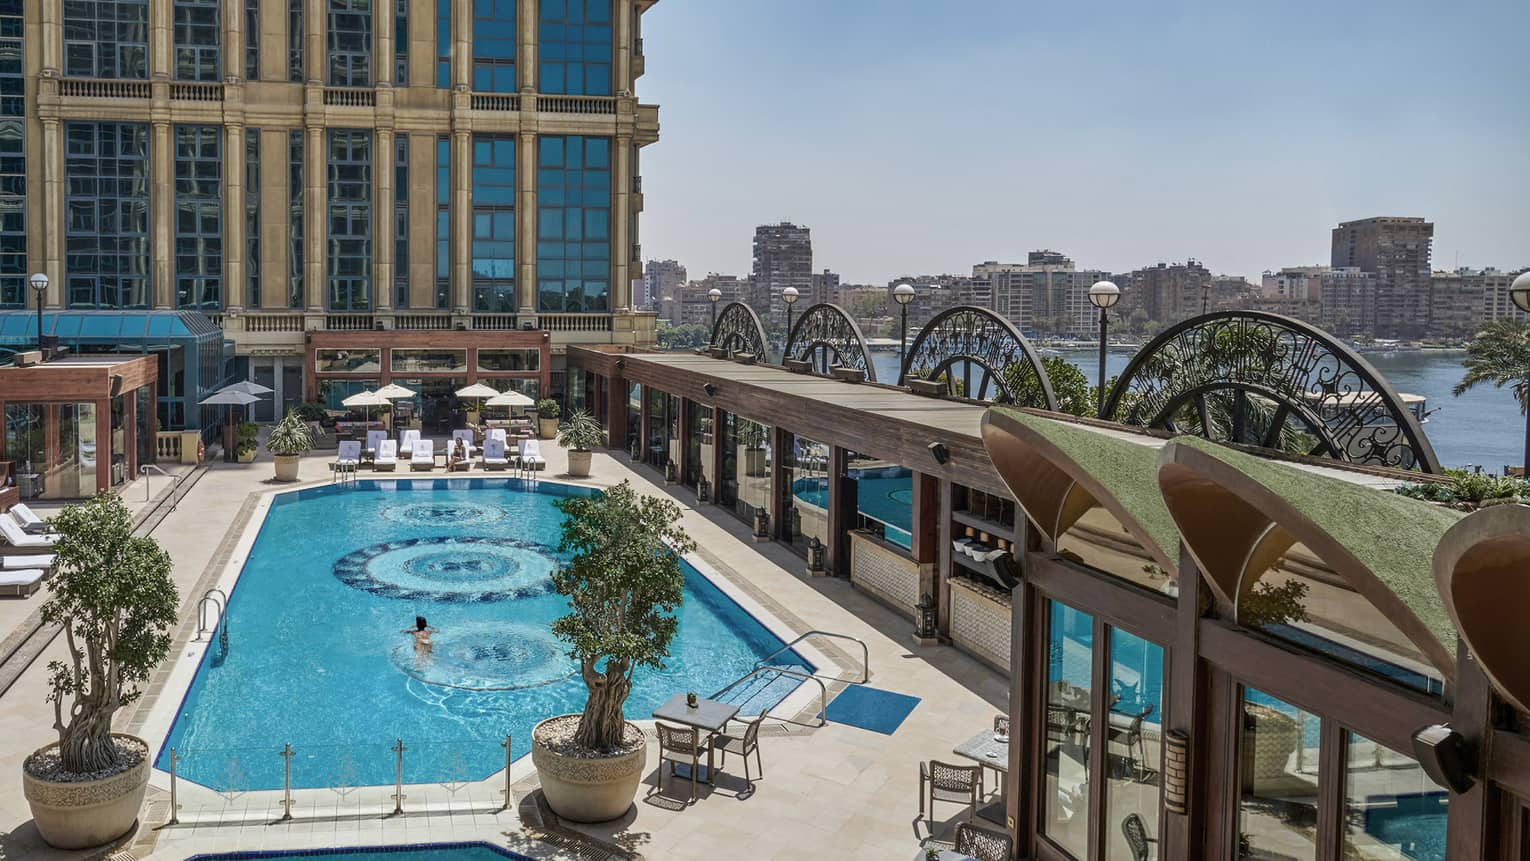 Outdoor pool with Nile views